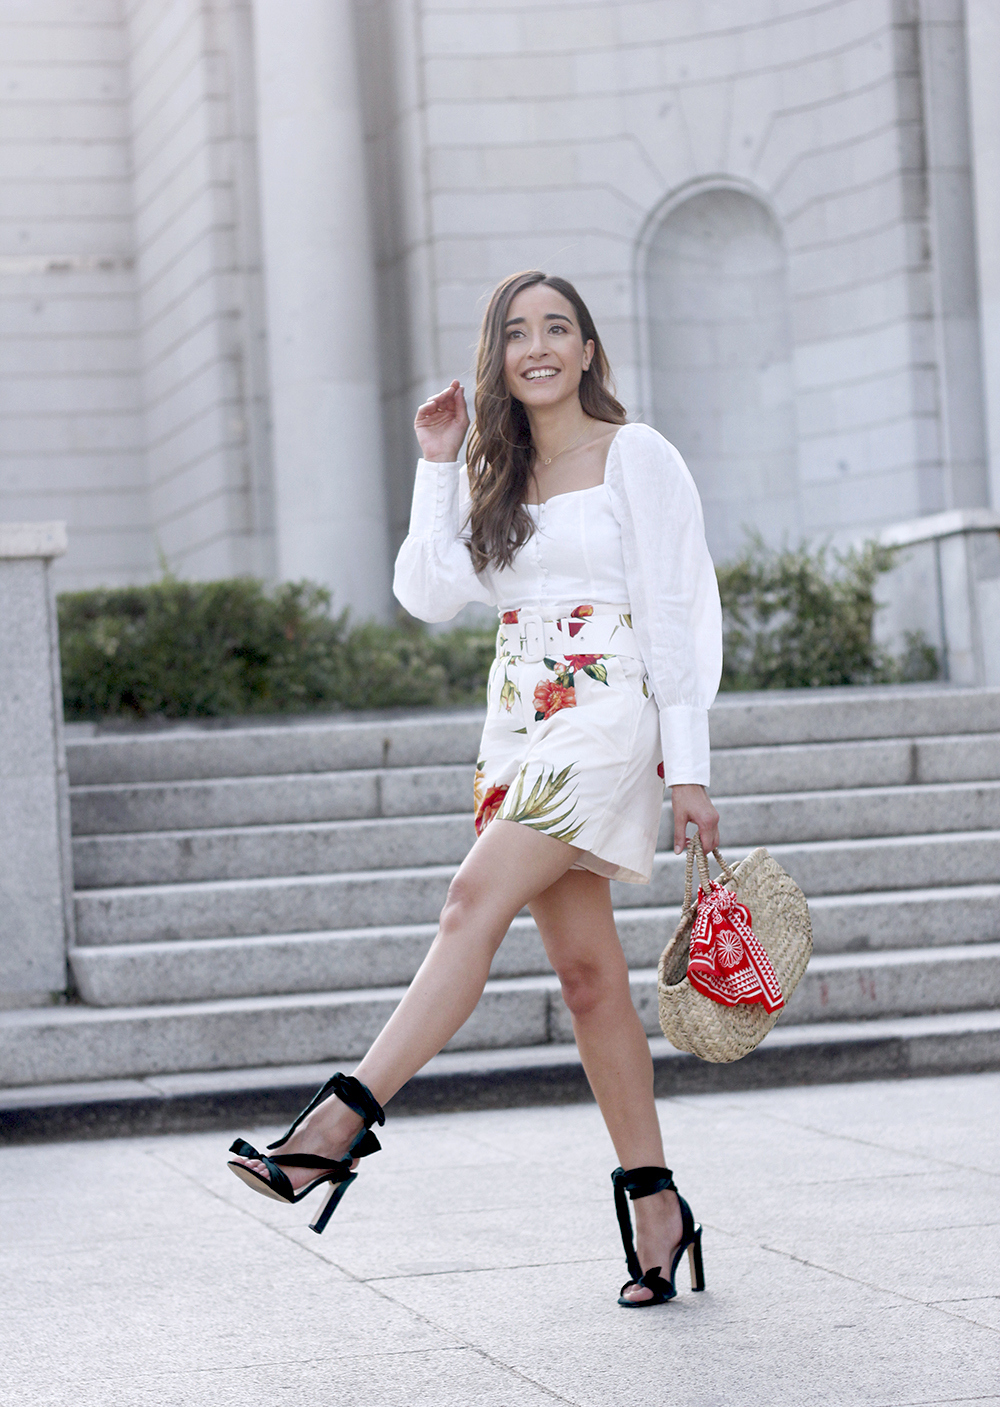 floral print shorts linnen top suede heels street style summer outfit 201911